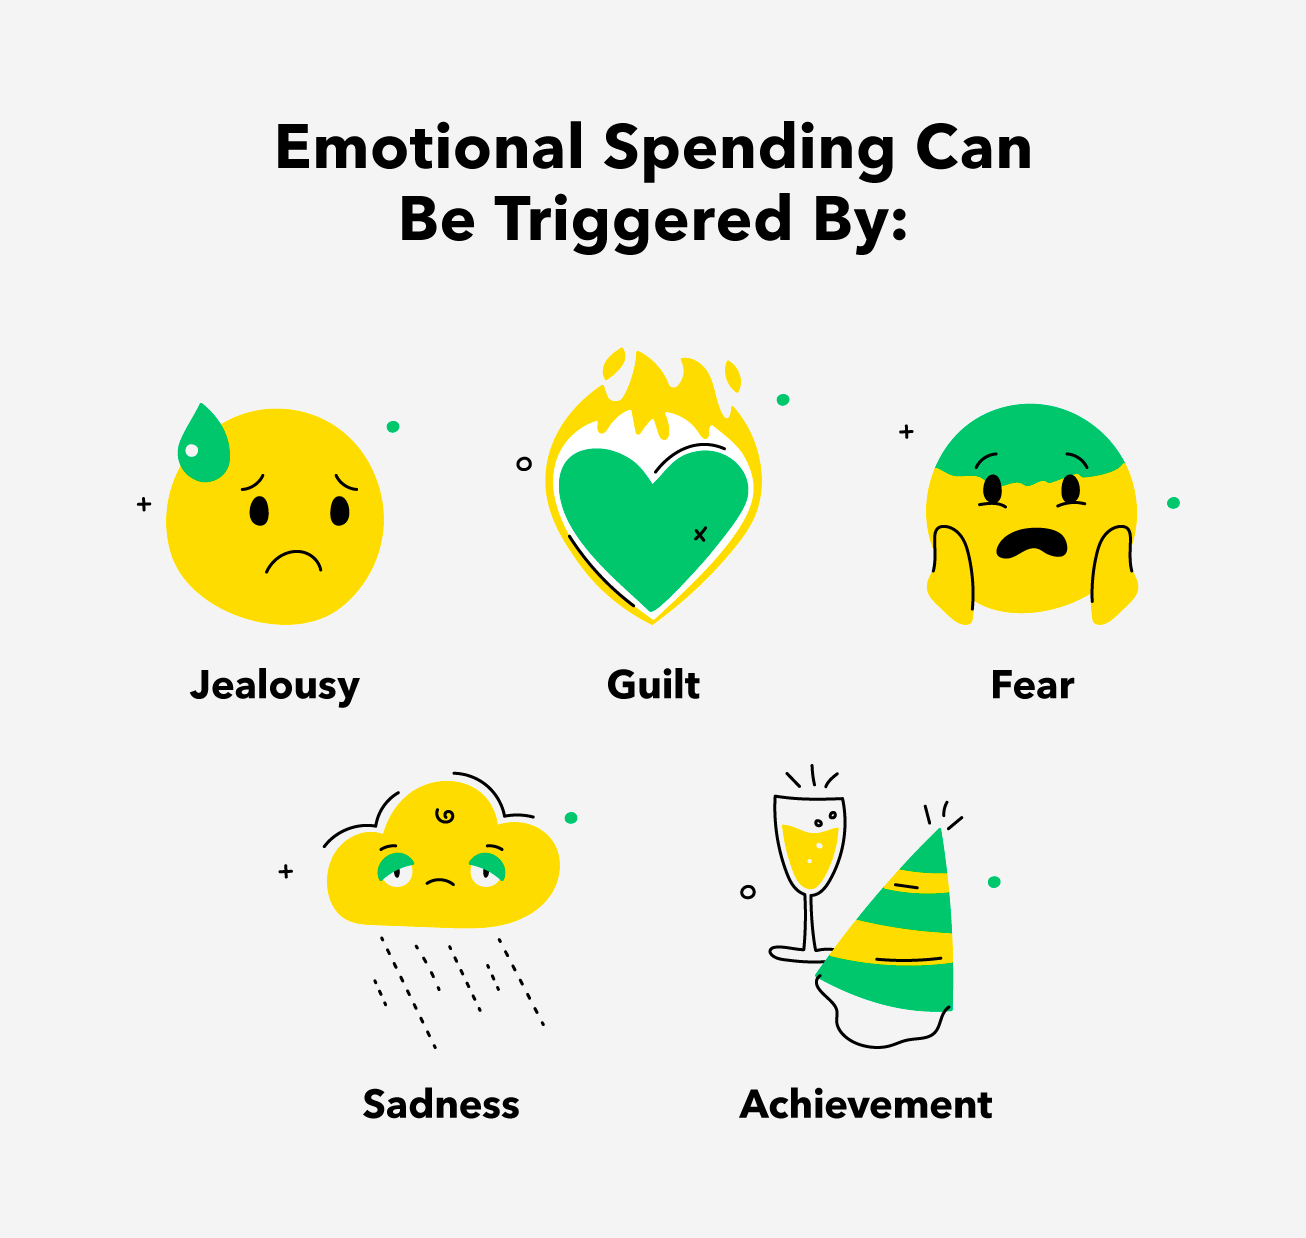 5 Common Emotional Spending Triggers